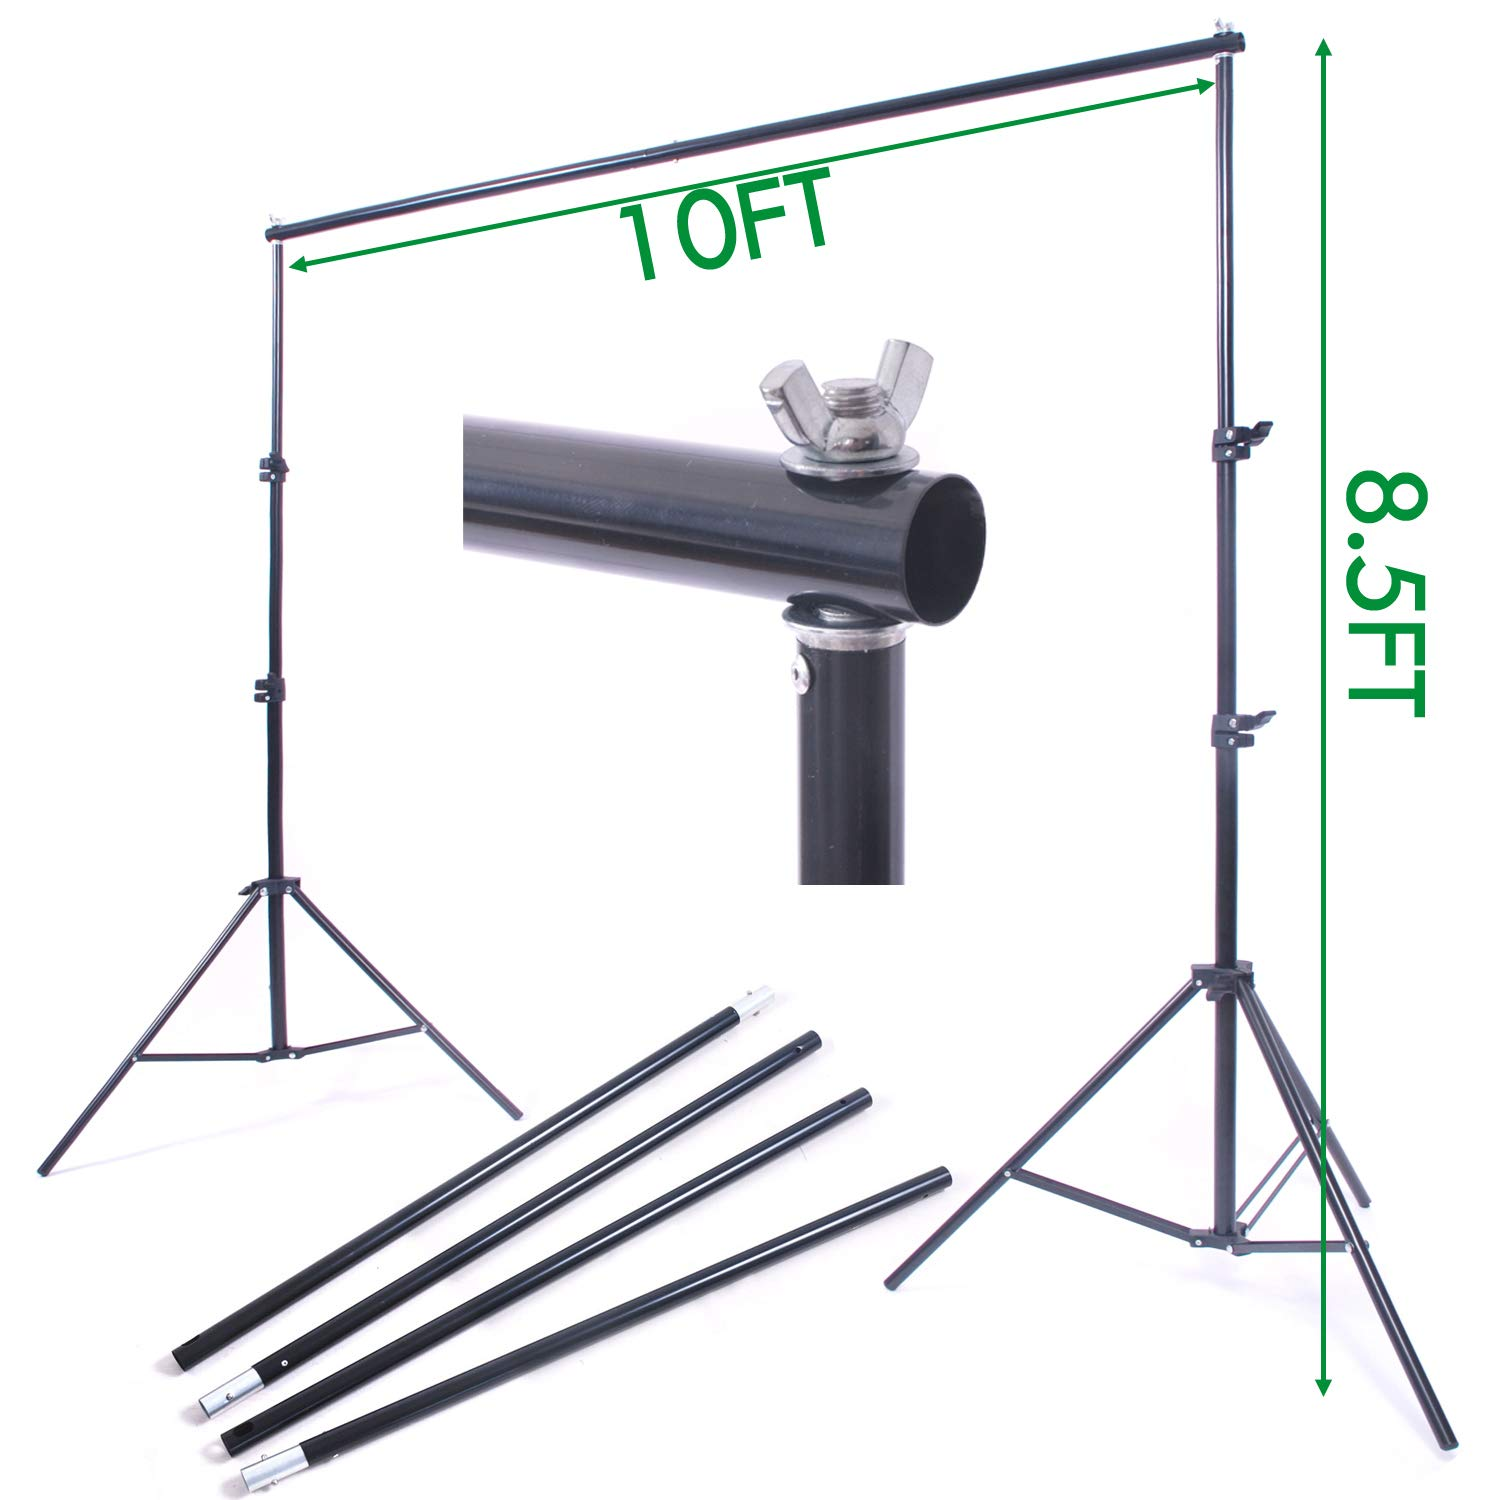 NiuBea Studio 10Ft Adjustable Background Stand Backdrop Support System for Photo Video